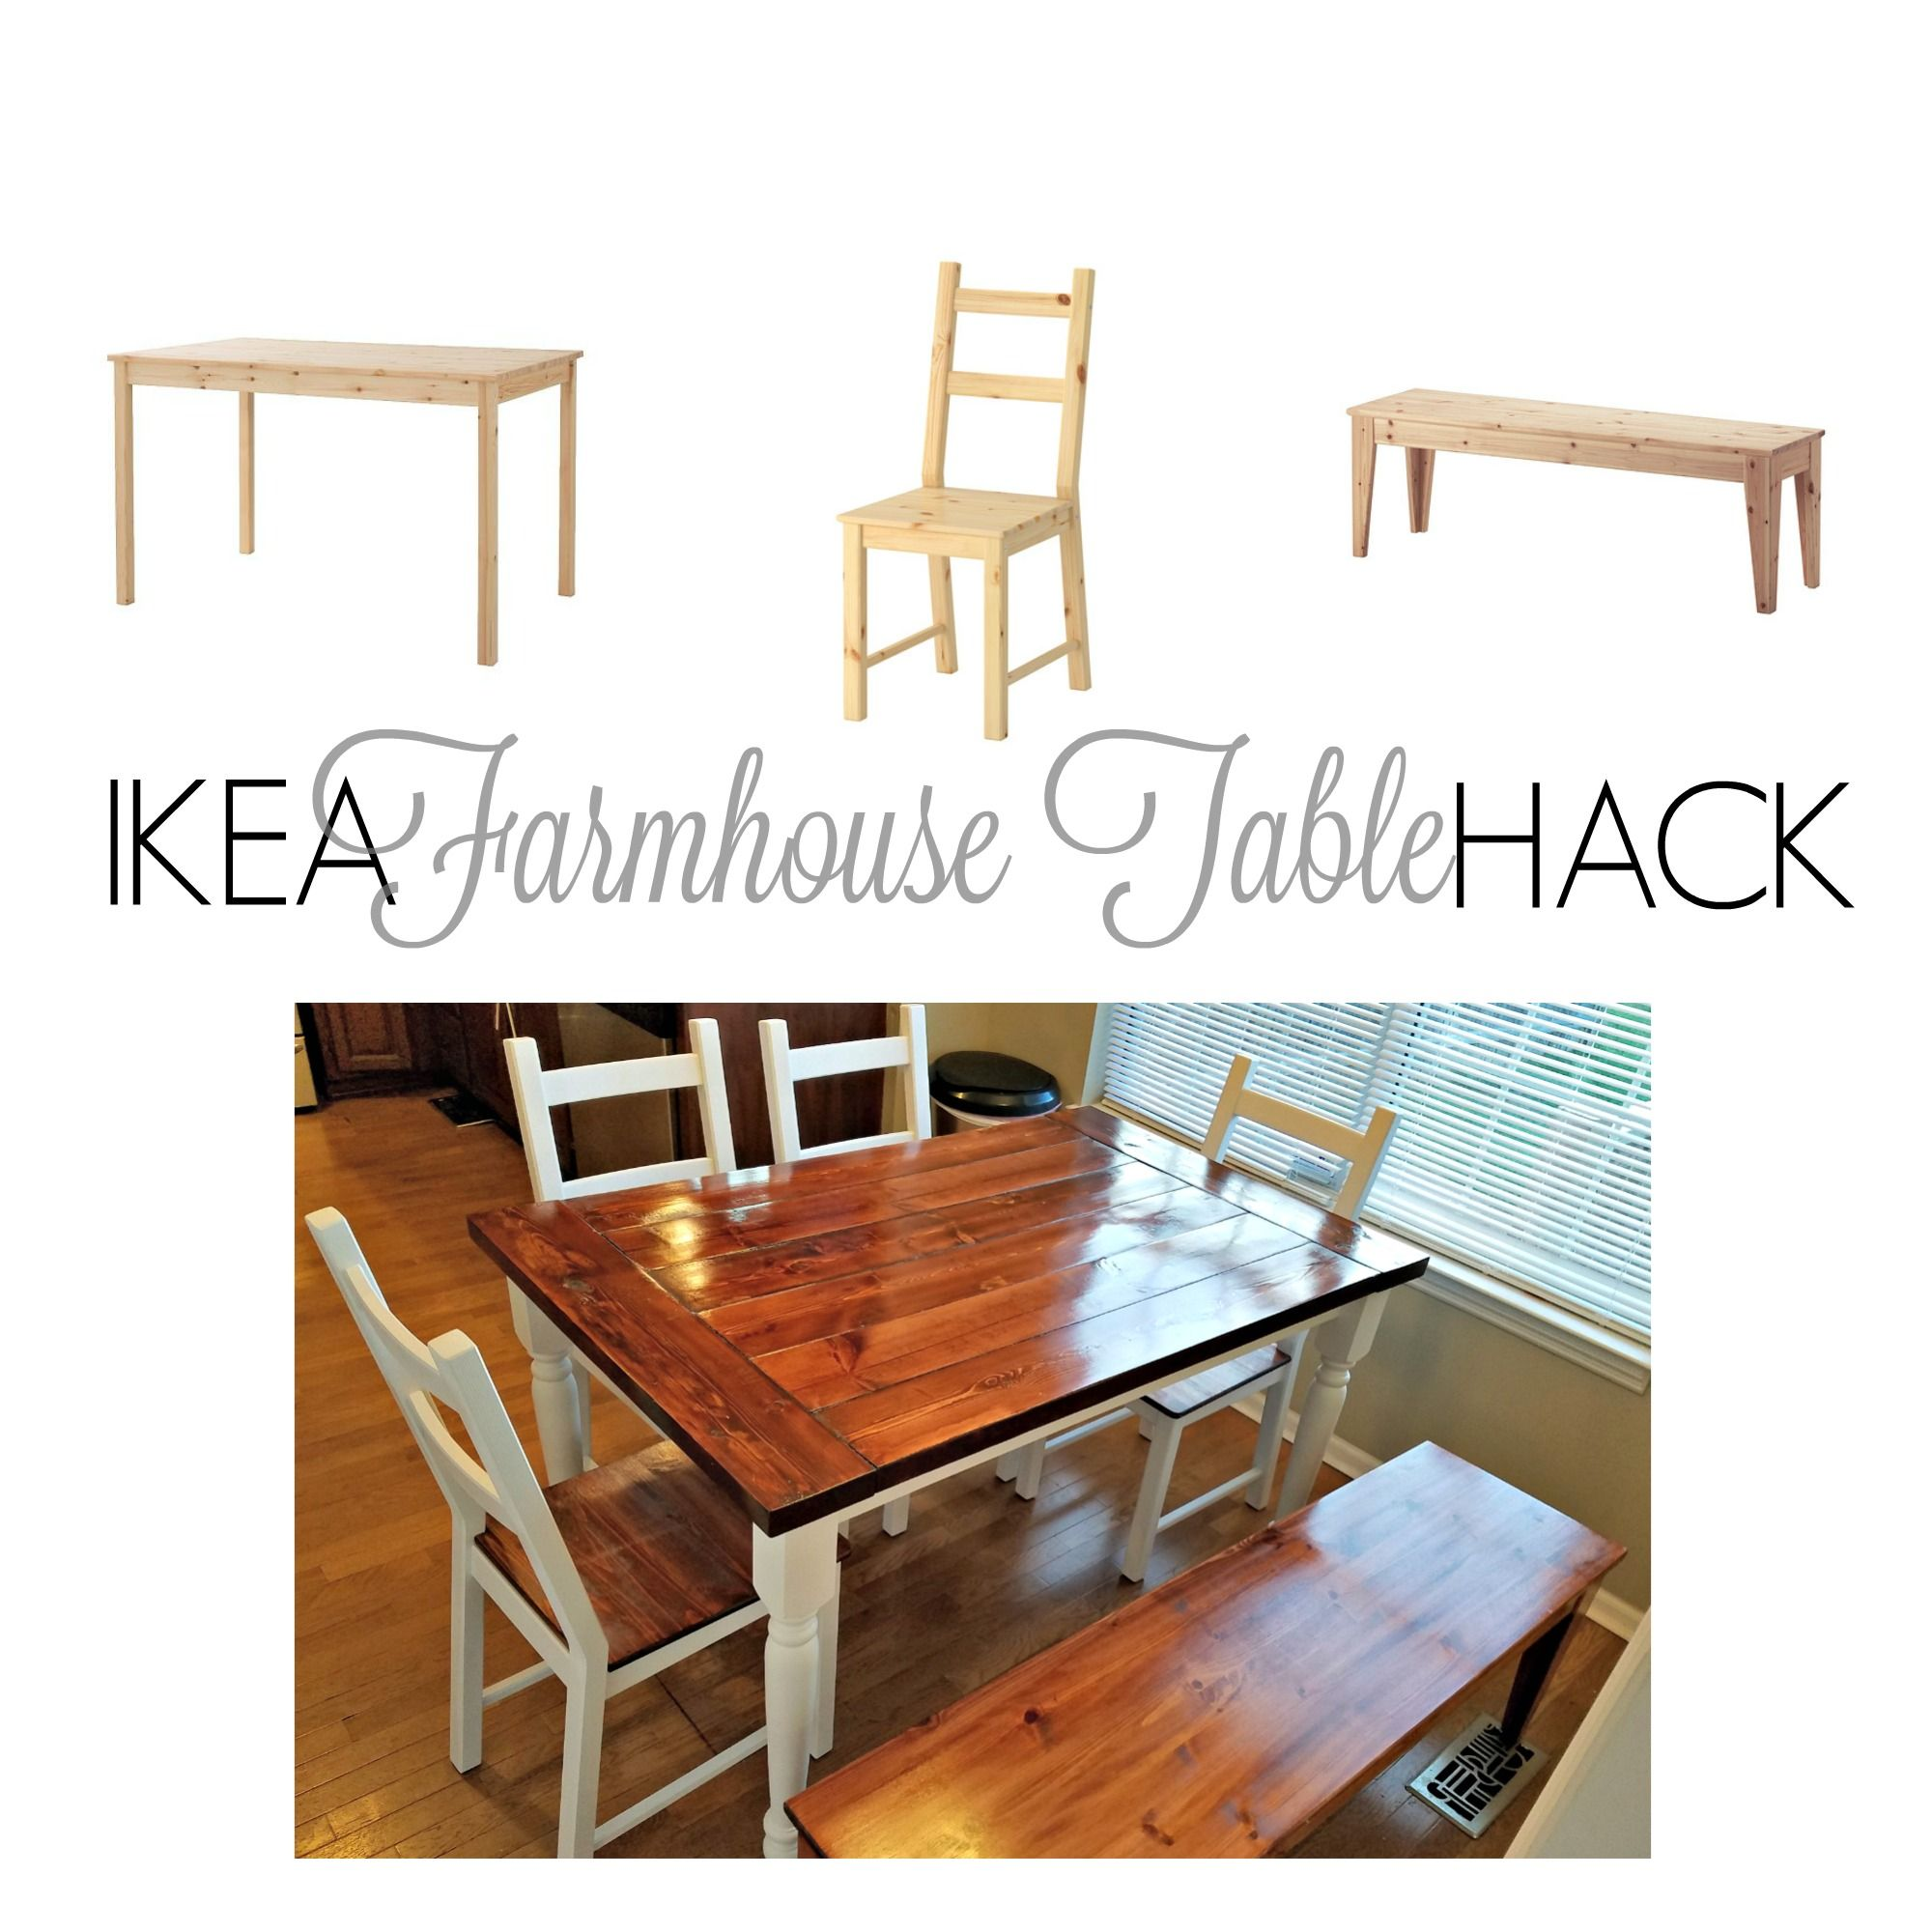 Ikea hack from ikea ingo to farmhouse table home decor ideas if you handy with a drill you can take on this ikea hack by taking the ingo table from basic pinewood to stunning farmhouse inspired kitchen table workwithnaturefo